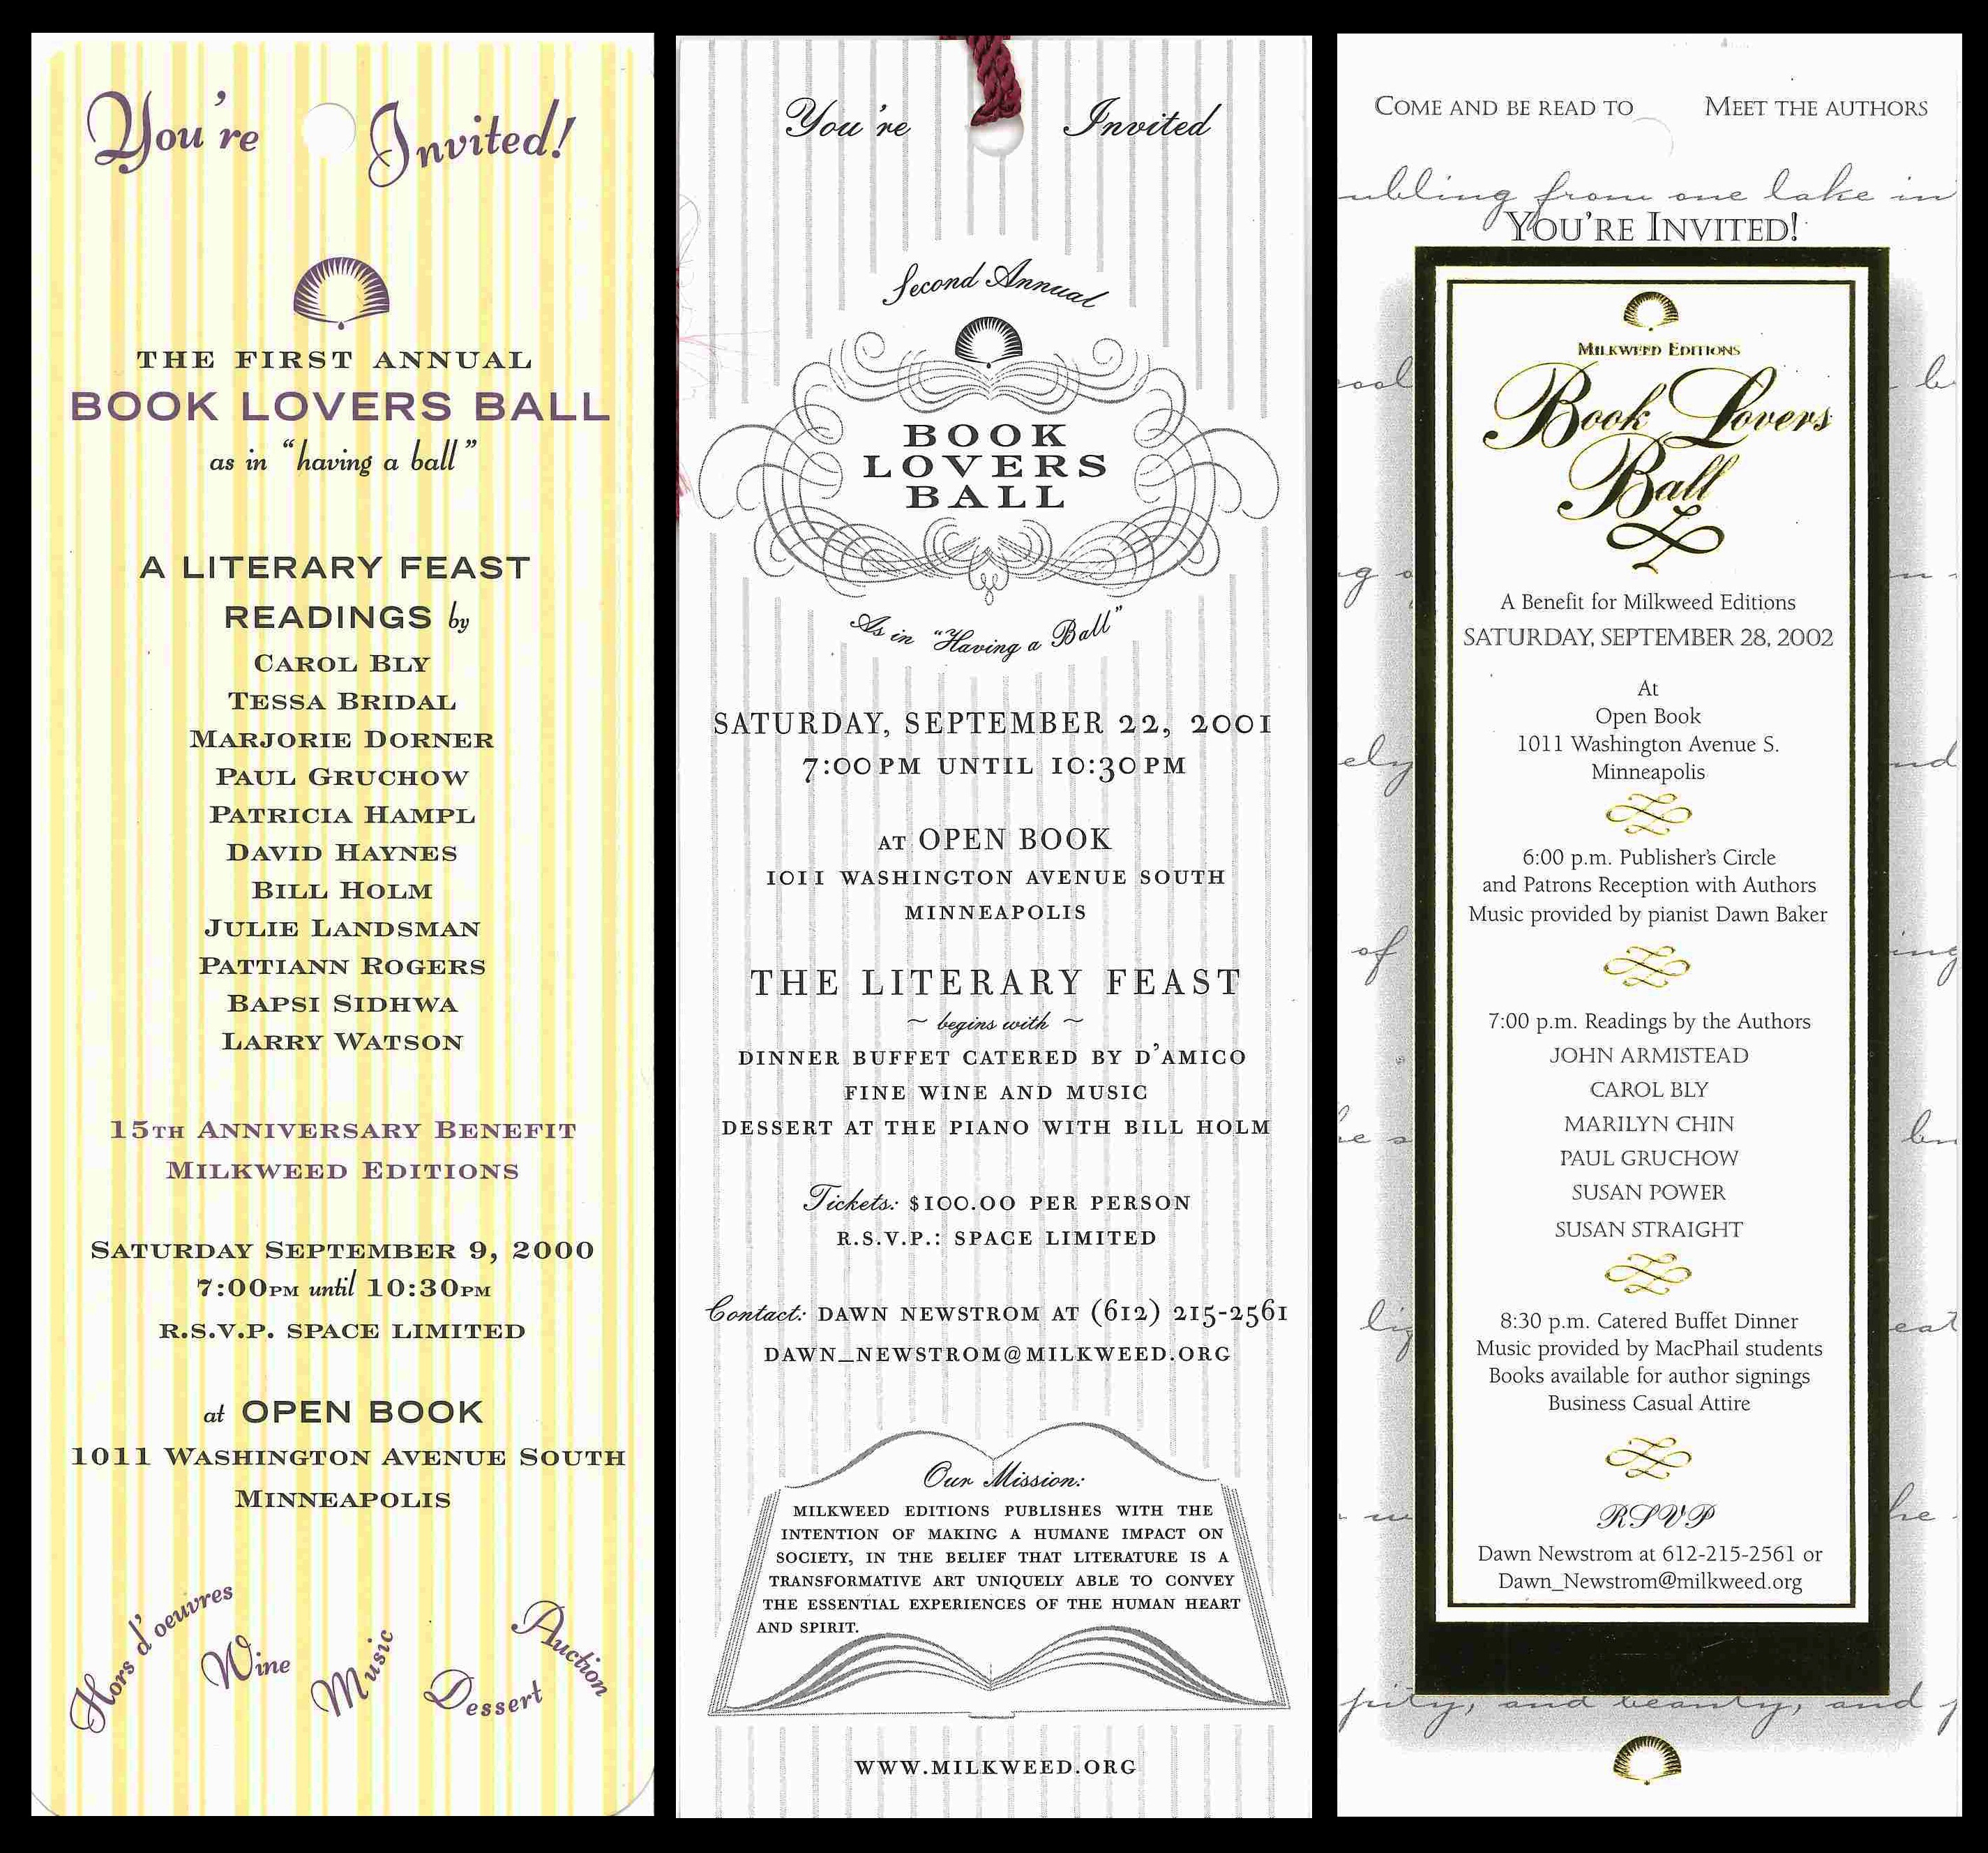 Book Lovers Ball Invitations 2000–2002 | Milkweed Editions